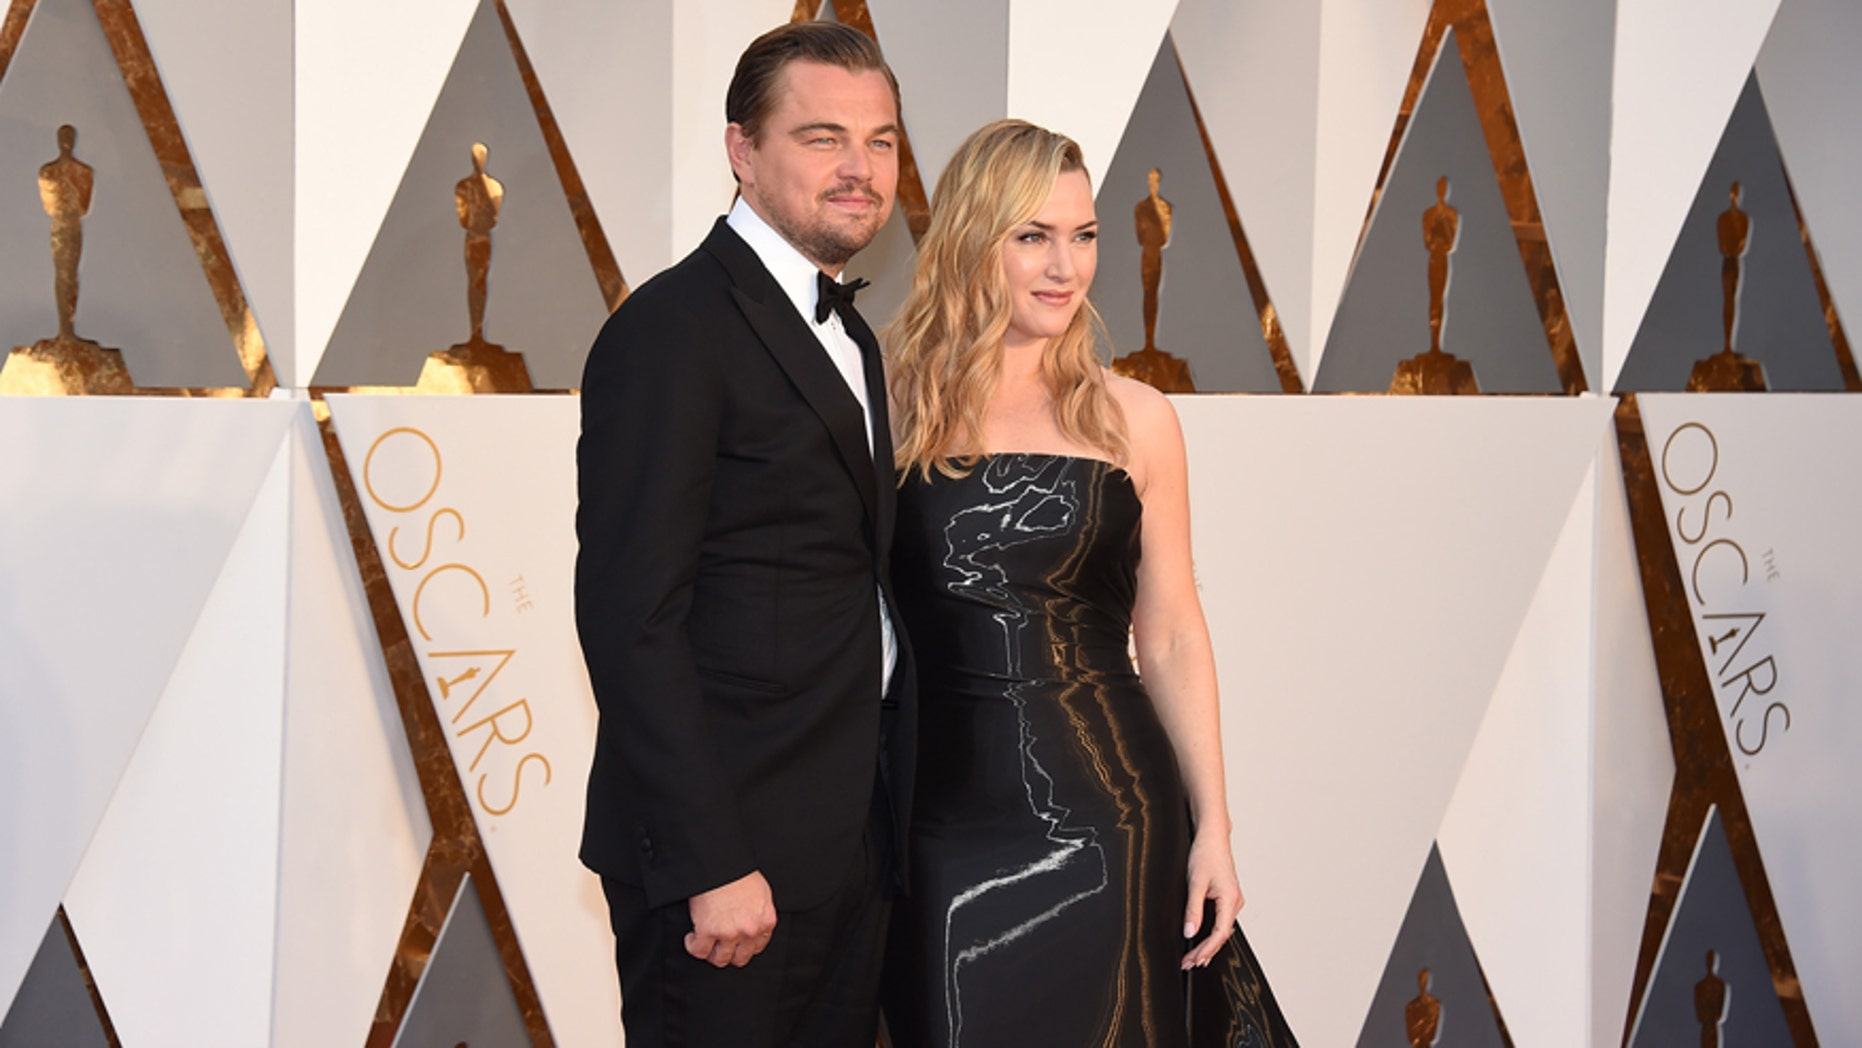 Leonardo DiCaprio, left, and Kate Winslet arrive at the Oscars on Sunday, Feb. 28, 2016, at the Dolby Theatre in Los Angeles.